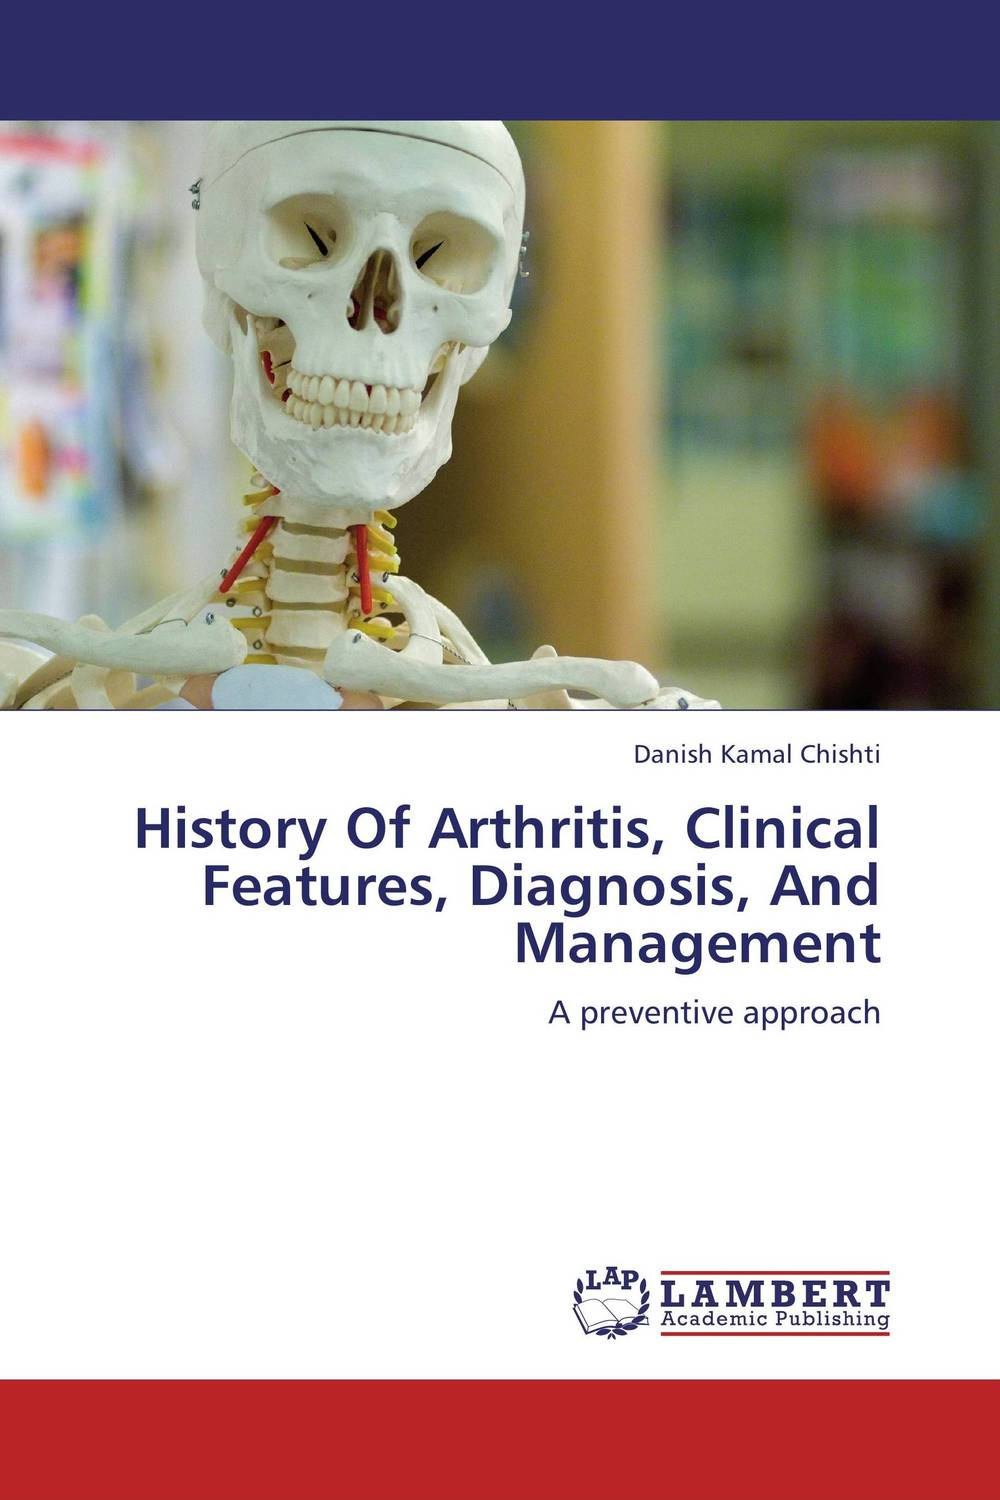 History Of Arthritis, Clinical Features, Diagnosis, And Management franke bibliotheca cardiologica ballistocardiogra phy research and computer diagnosis